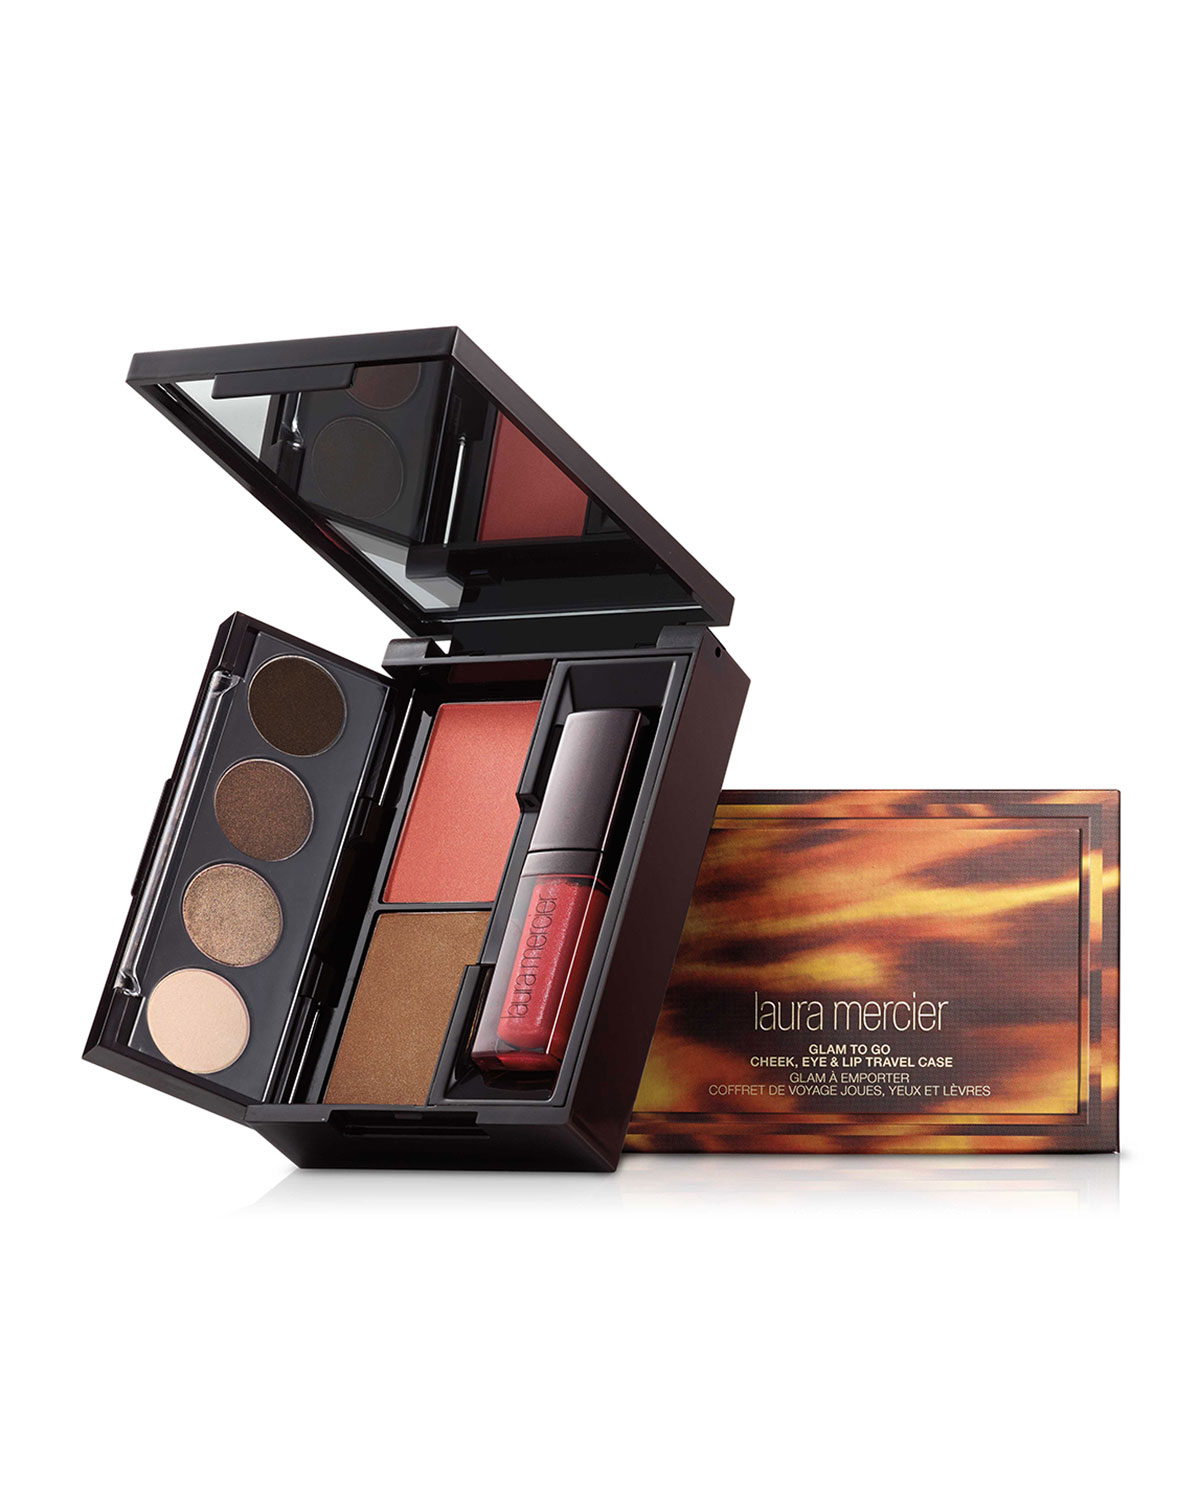 Limited Edition Glam to Go - Cheek, Eye & Lip Travel Case ($85 Value)